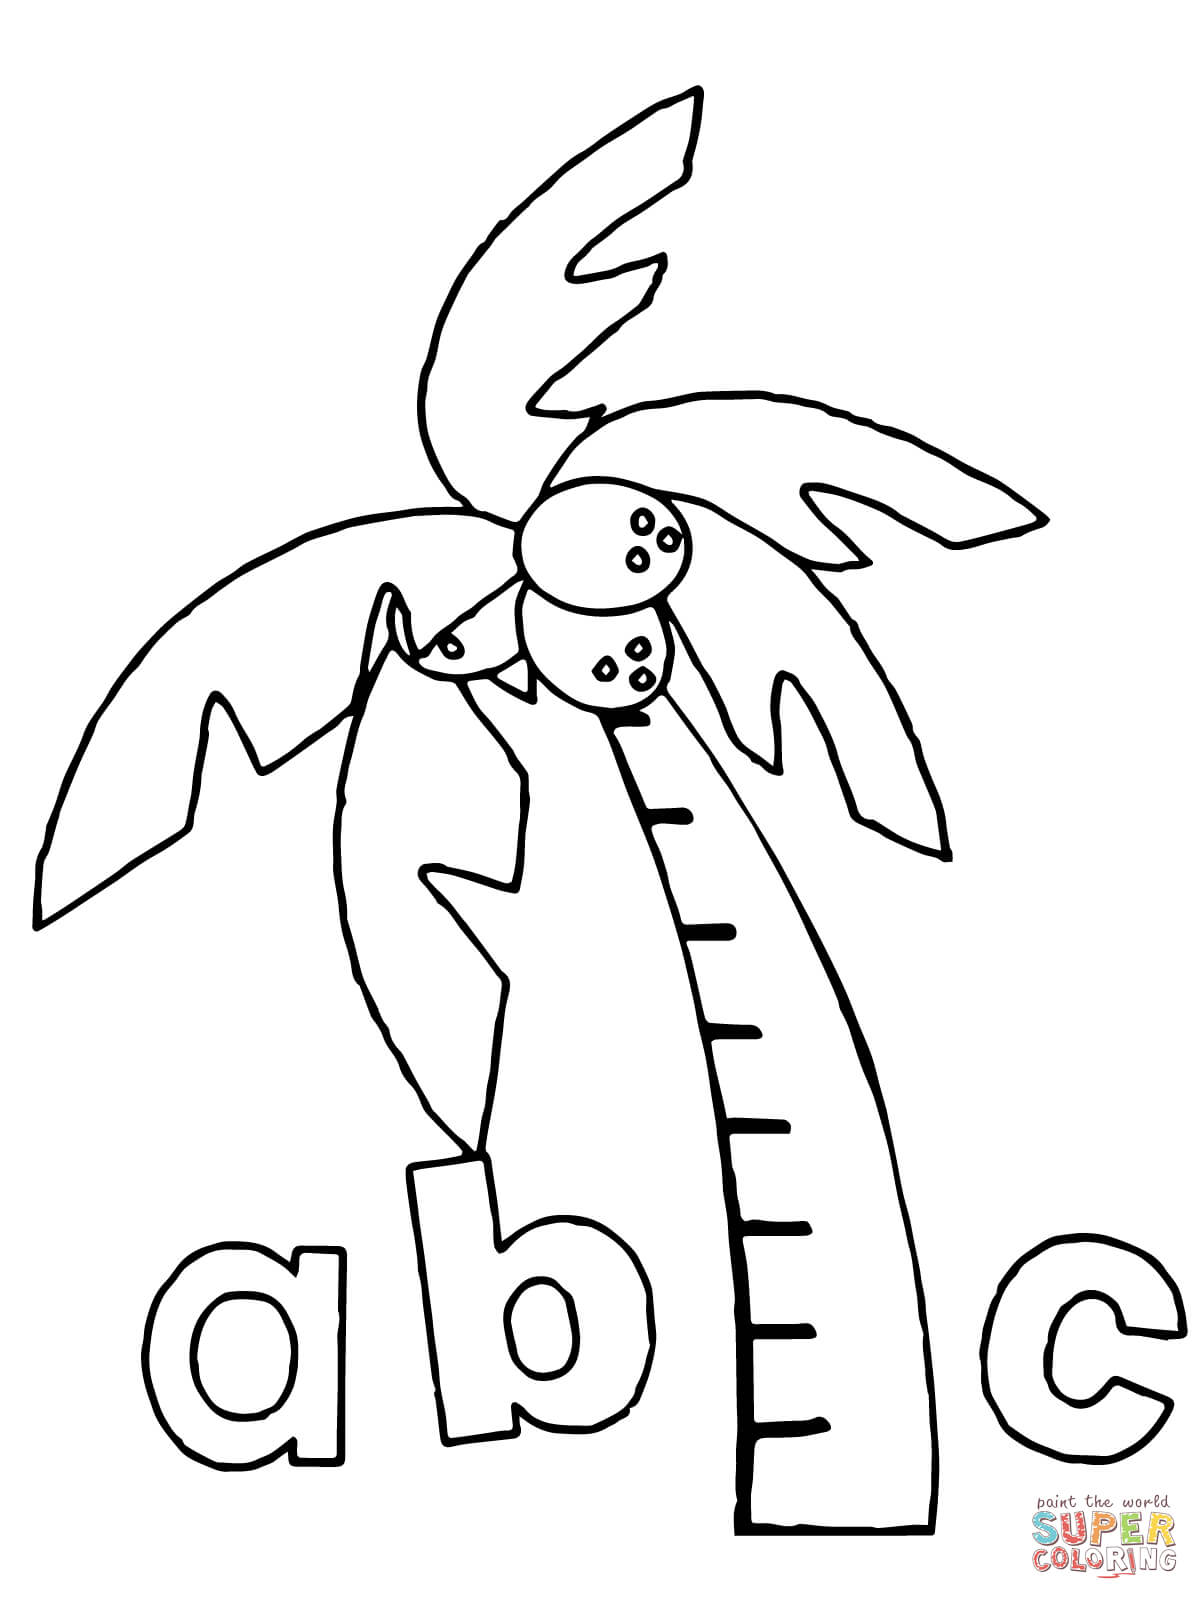 Free Chicka Chicka Boom Boom Coloring Pages, Download Free.